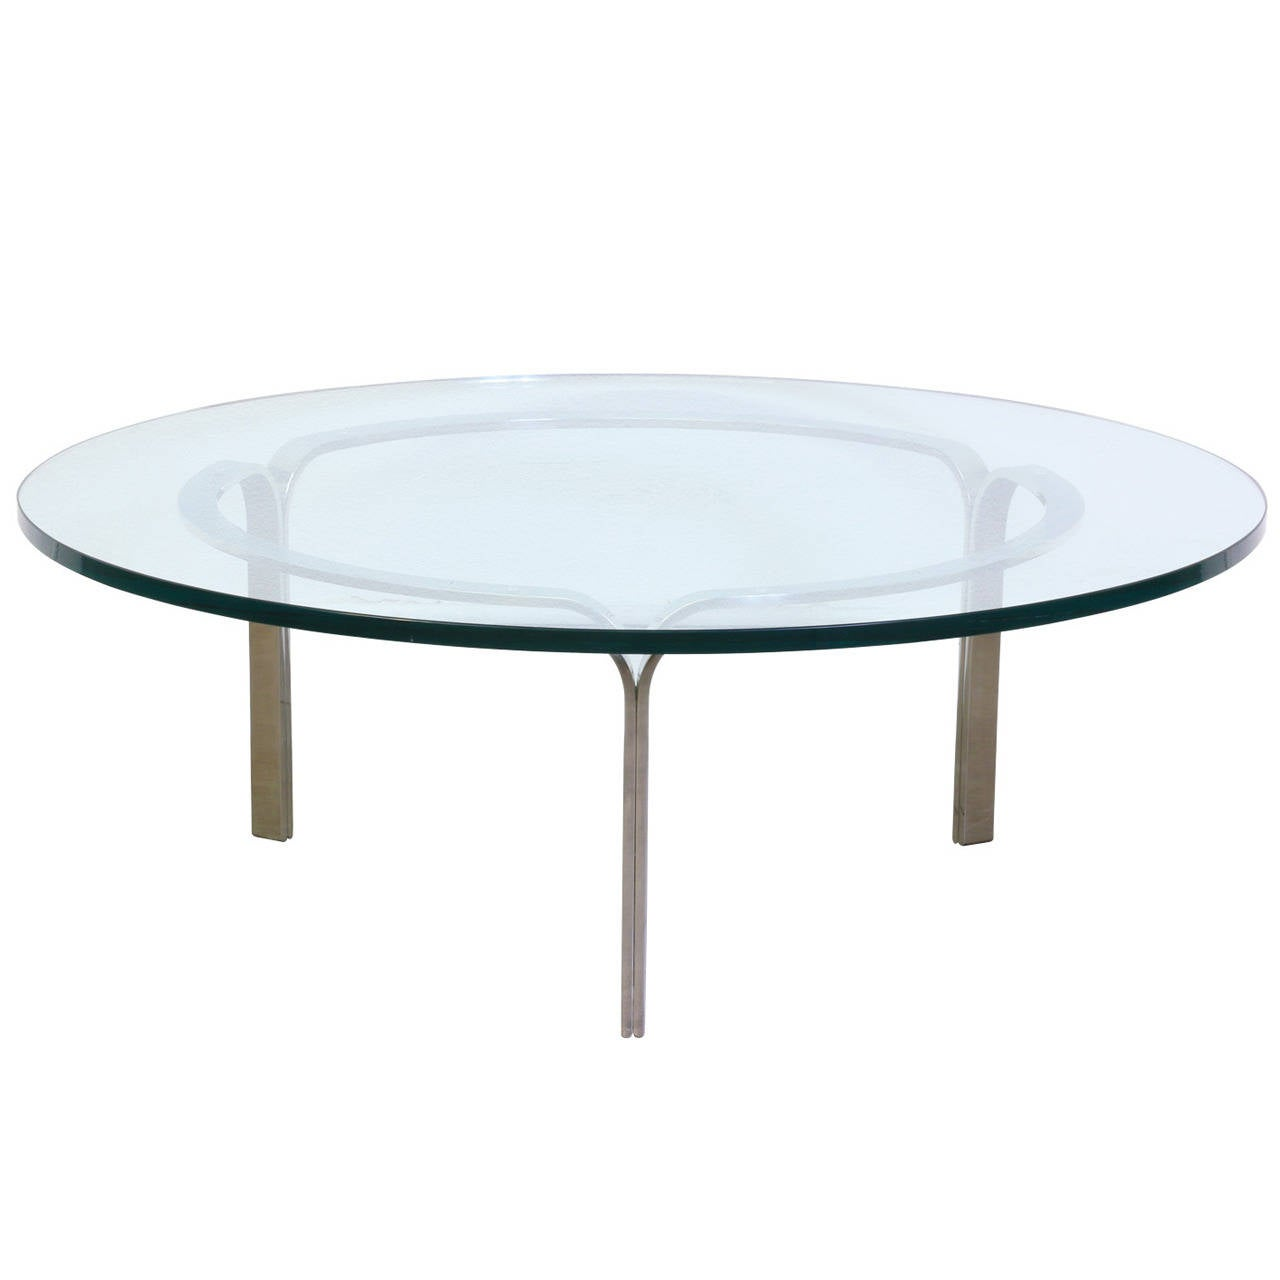 Nicos Zographos Ribbon Steel Coffee Table With Glass Top For Sale At 1stdibs